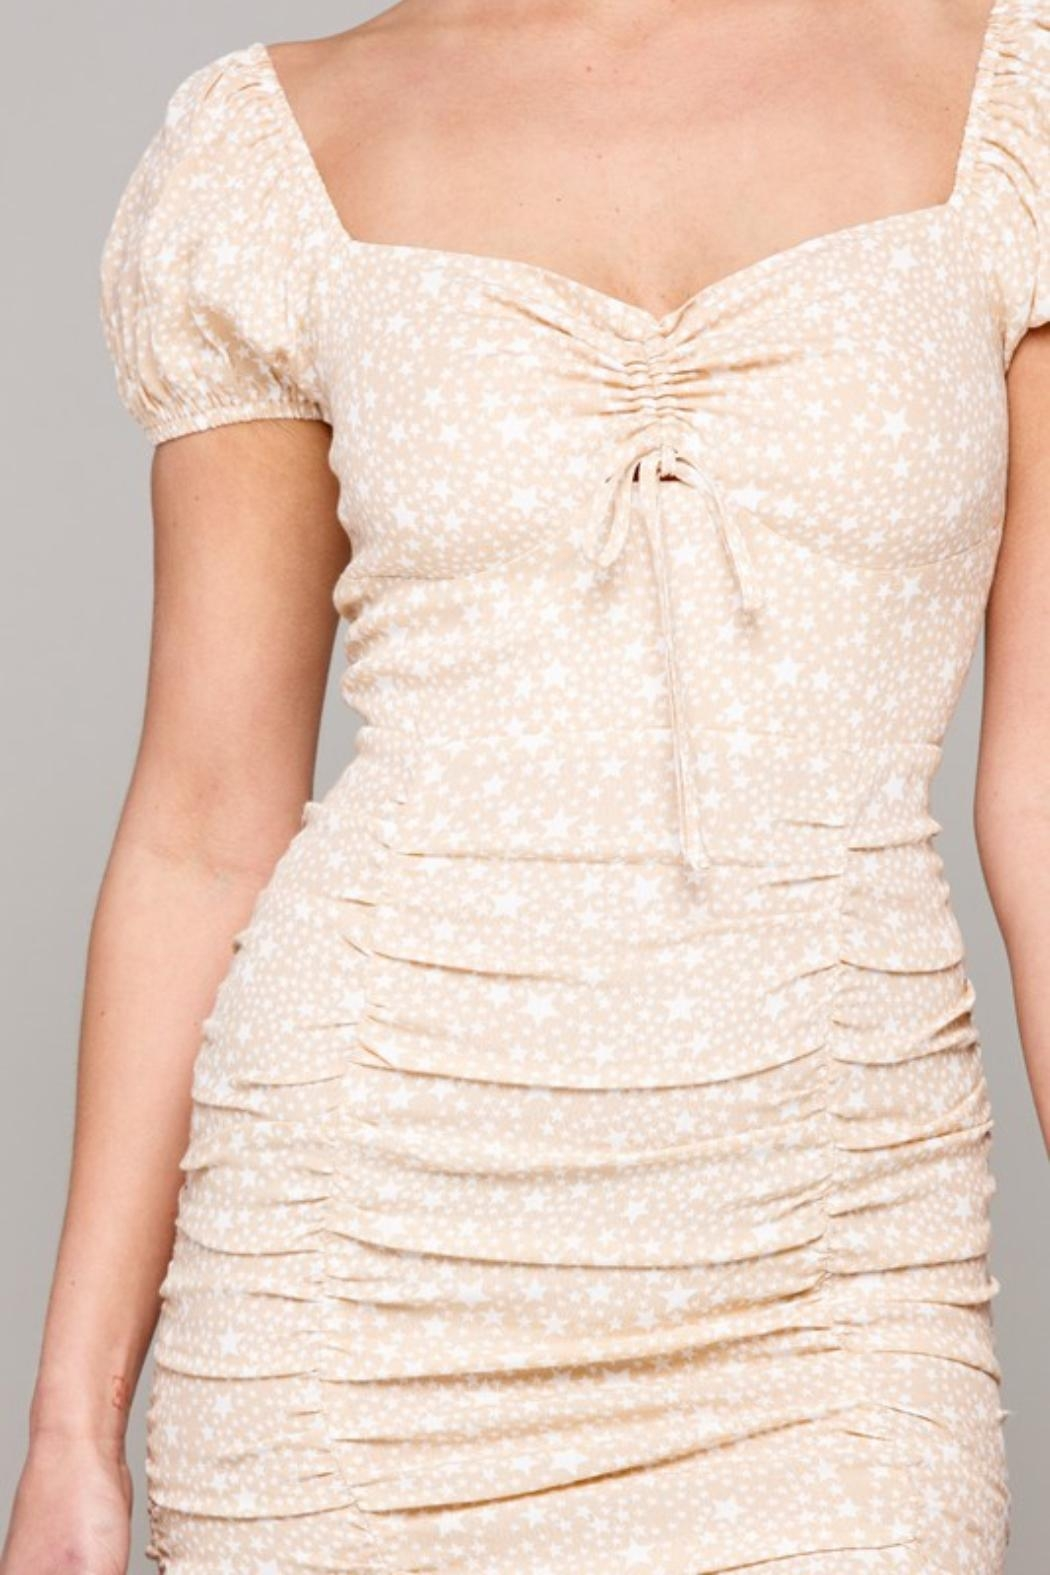 Pretty Little Things Milkmaid Stars Dress - Side Cropped Image